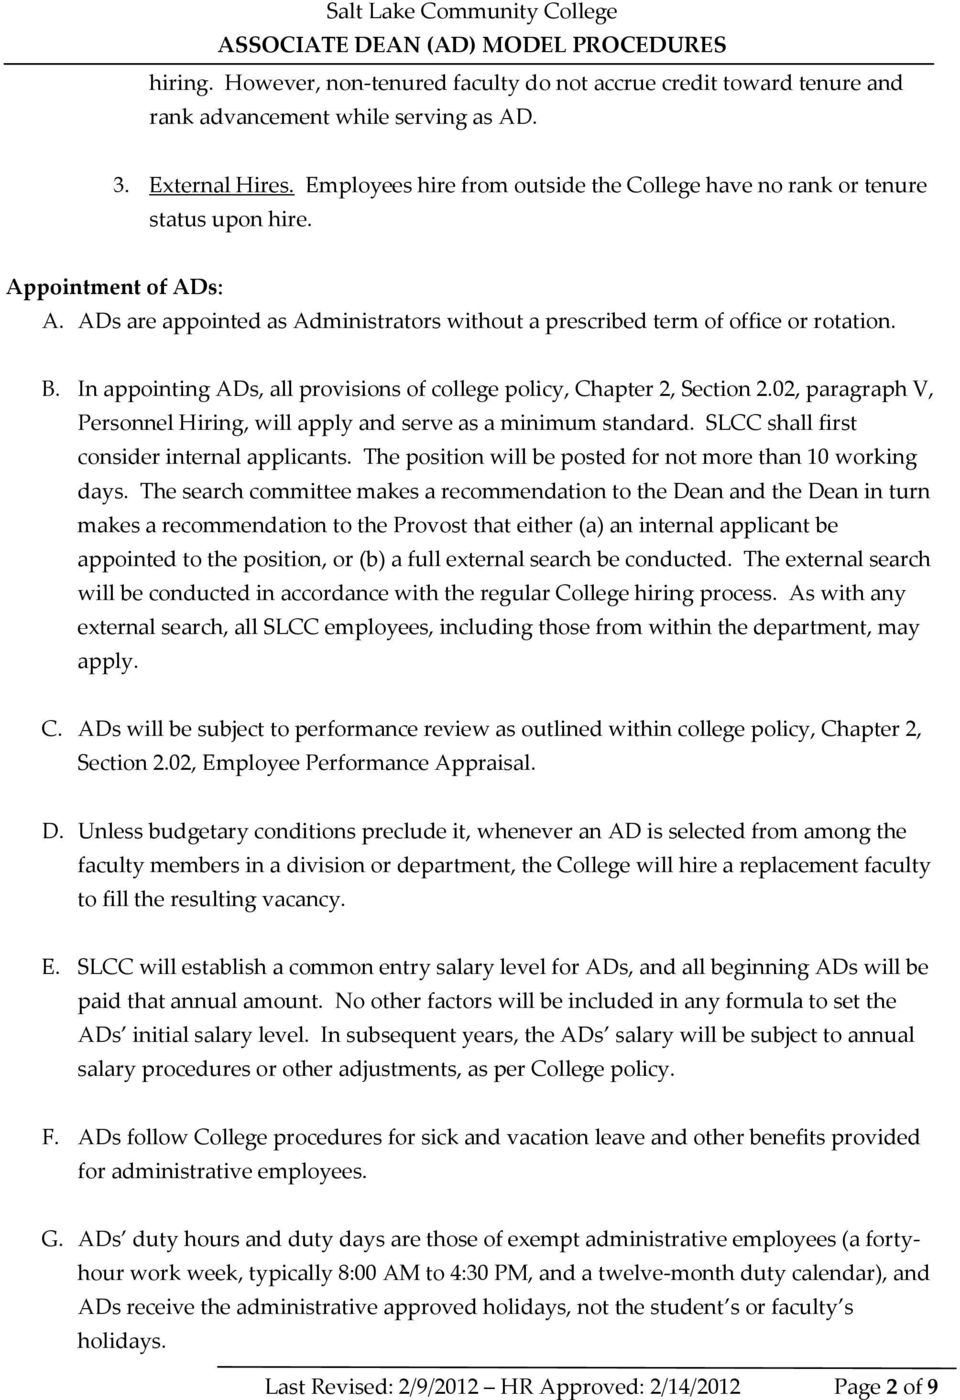 In appointing ADs, all provisions of college policy, Chapter 2, Section 2.02, paragraph V, Personnel Hiring, will apply and serve as a minimum standard. SLCC shall first consider internal applicants.